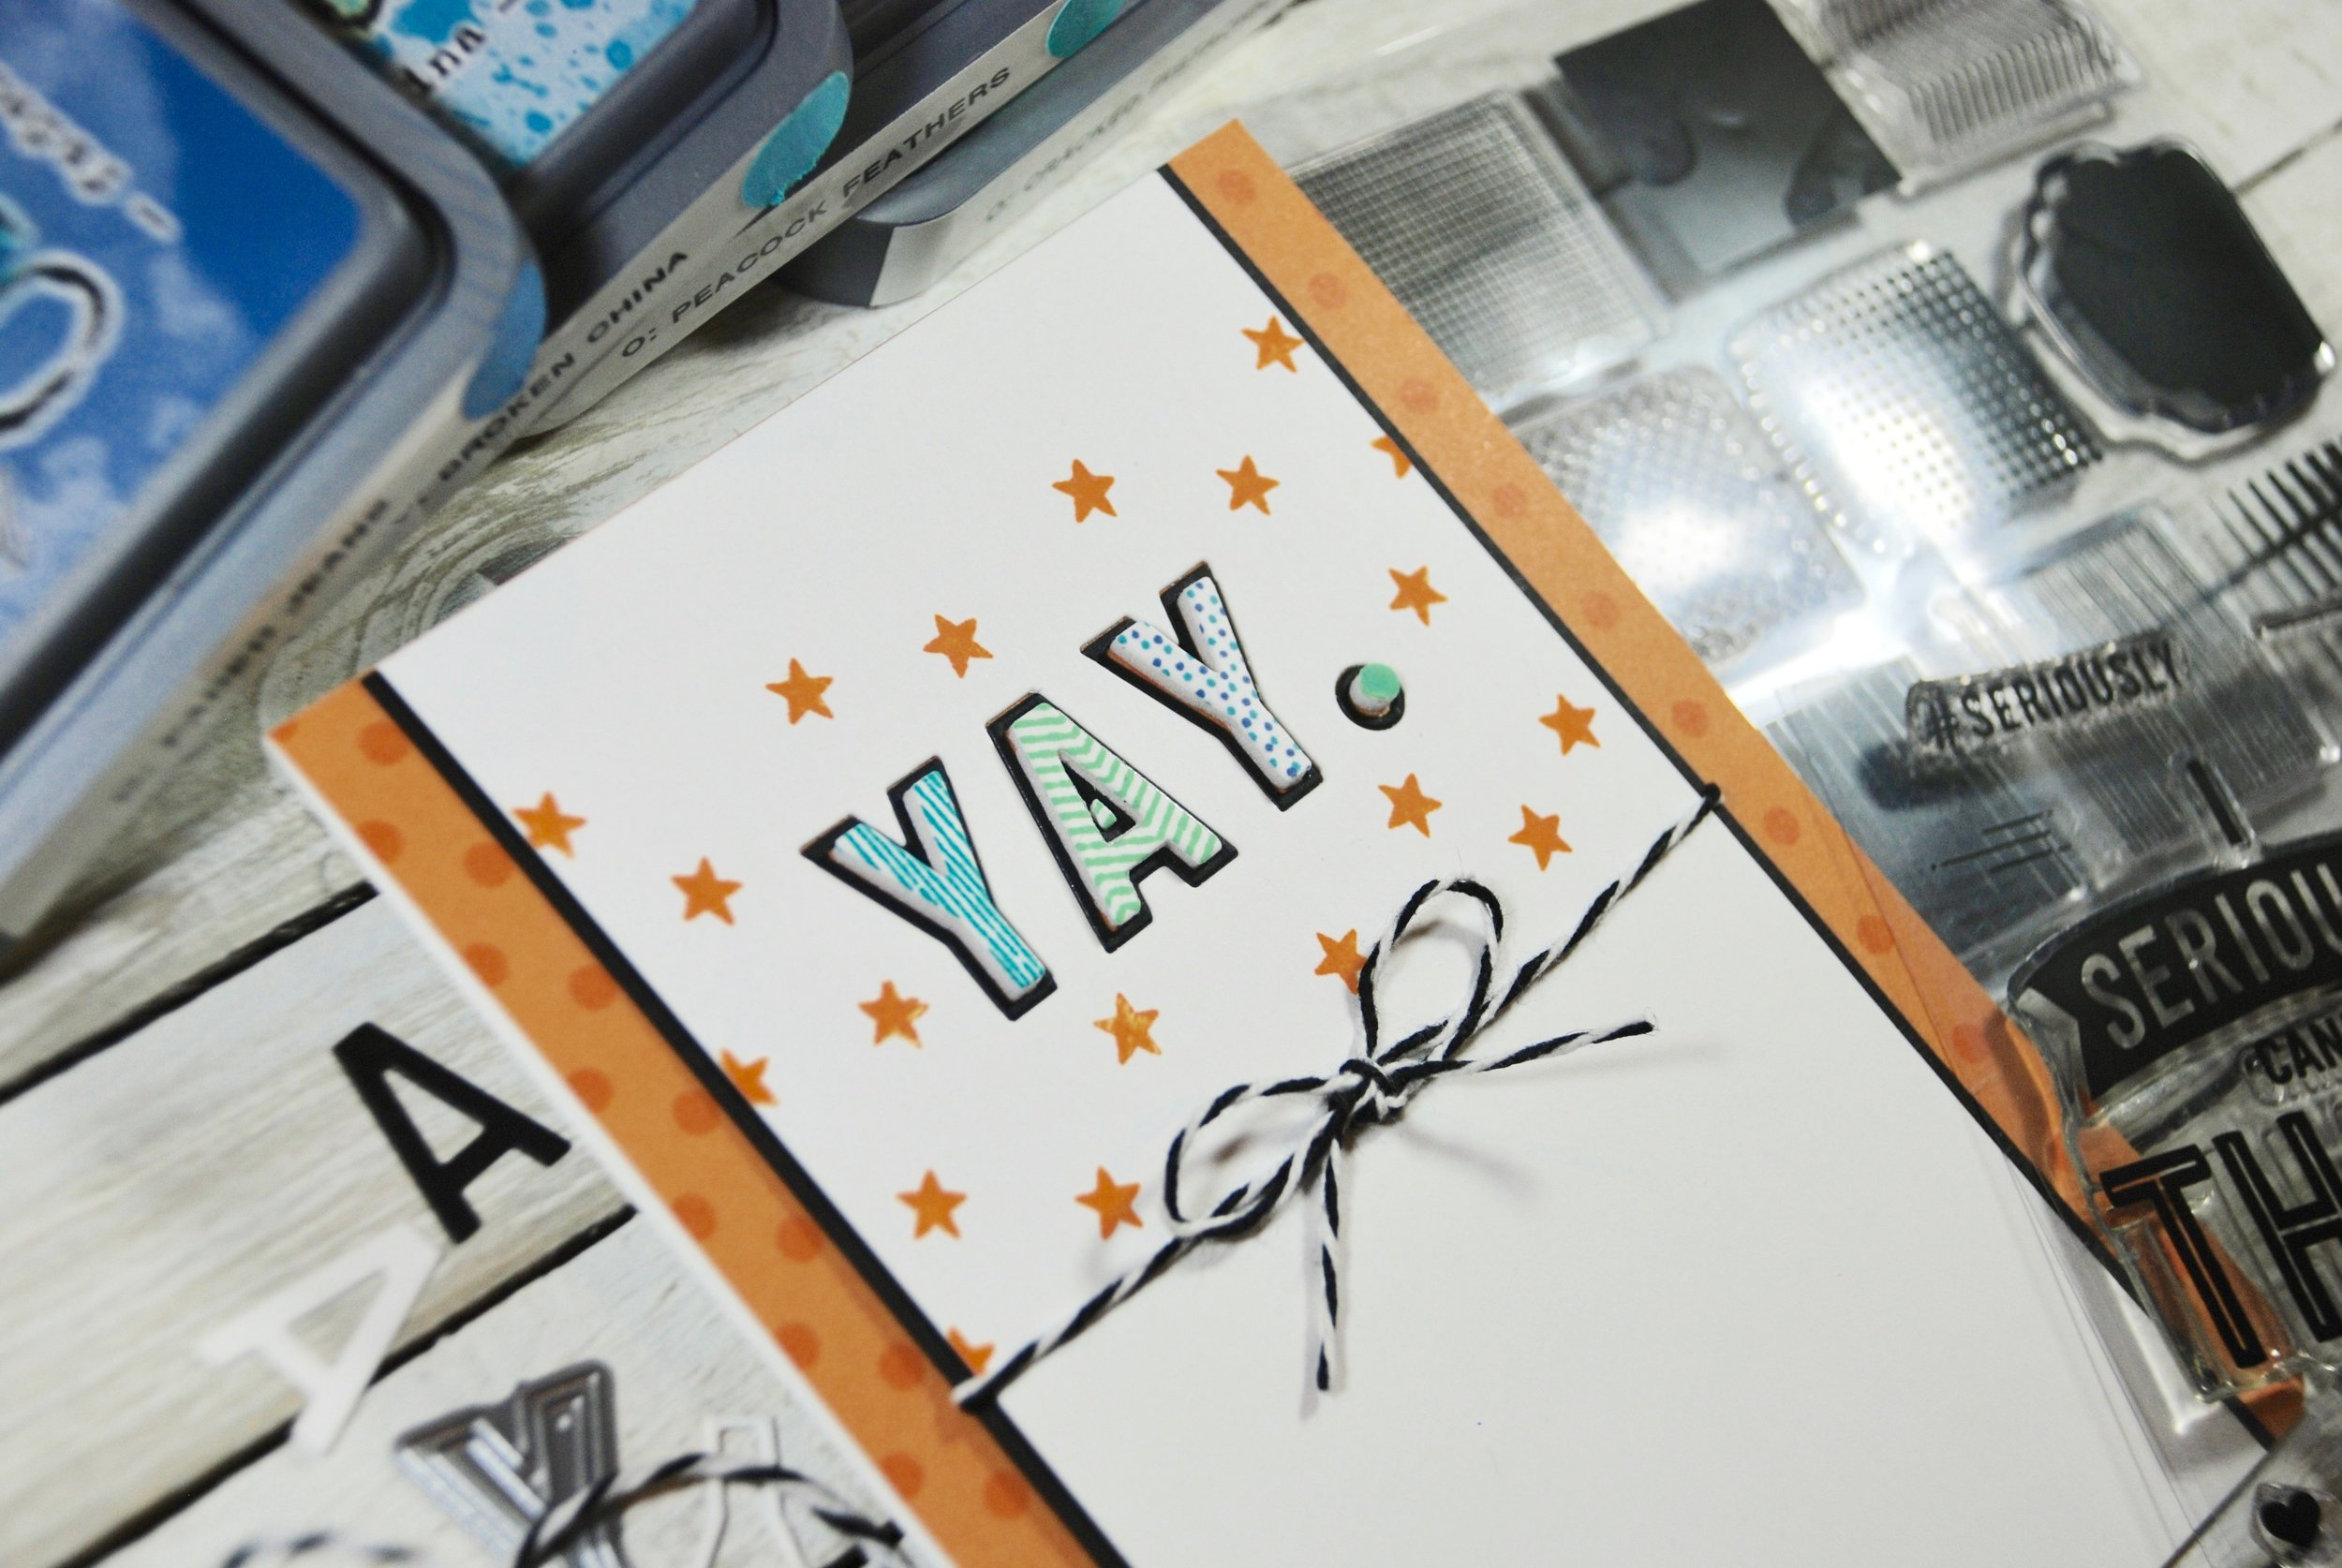 I used the coordinating stamp set with Distress Oxide inks to stamp the letters. The star is from the Seriously, Thank You stamp set.